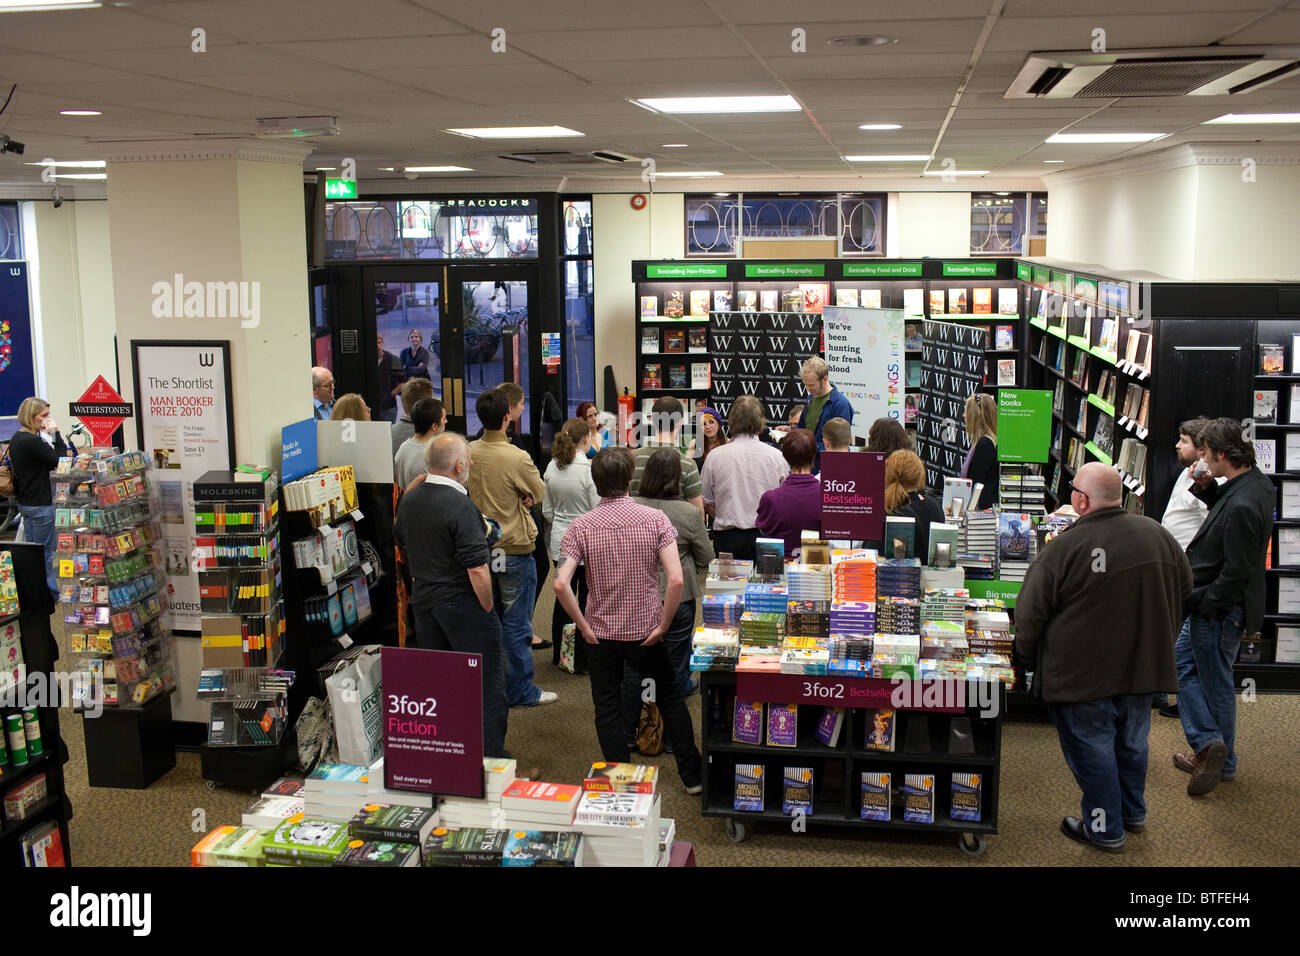 Bright Young Things book series published by Parthian launch at Watersones bookshop in Cardiff, Wales. - Stock Image